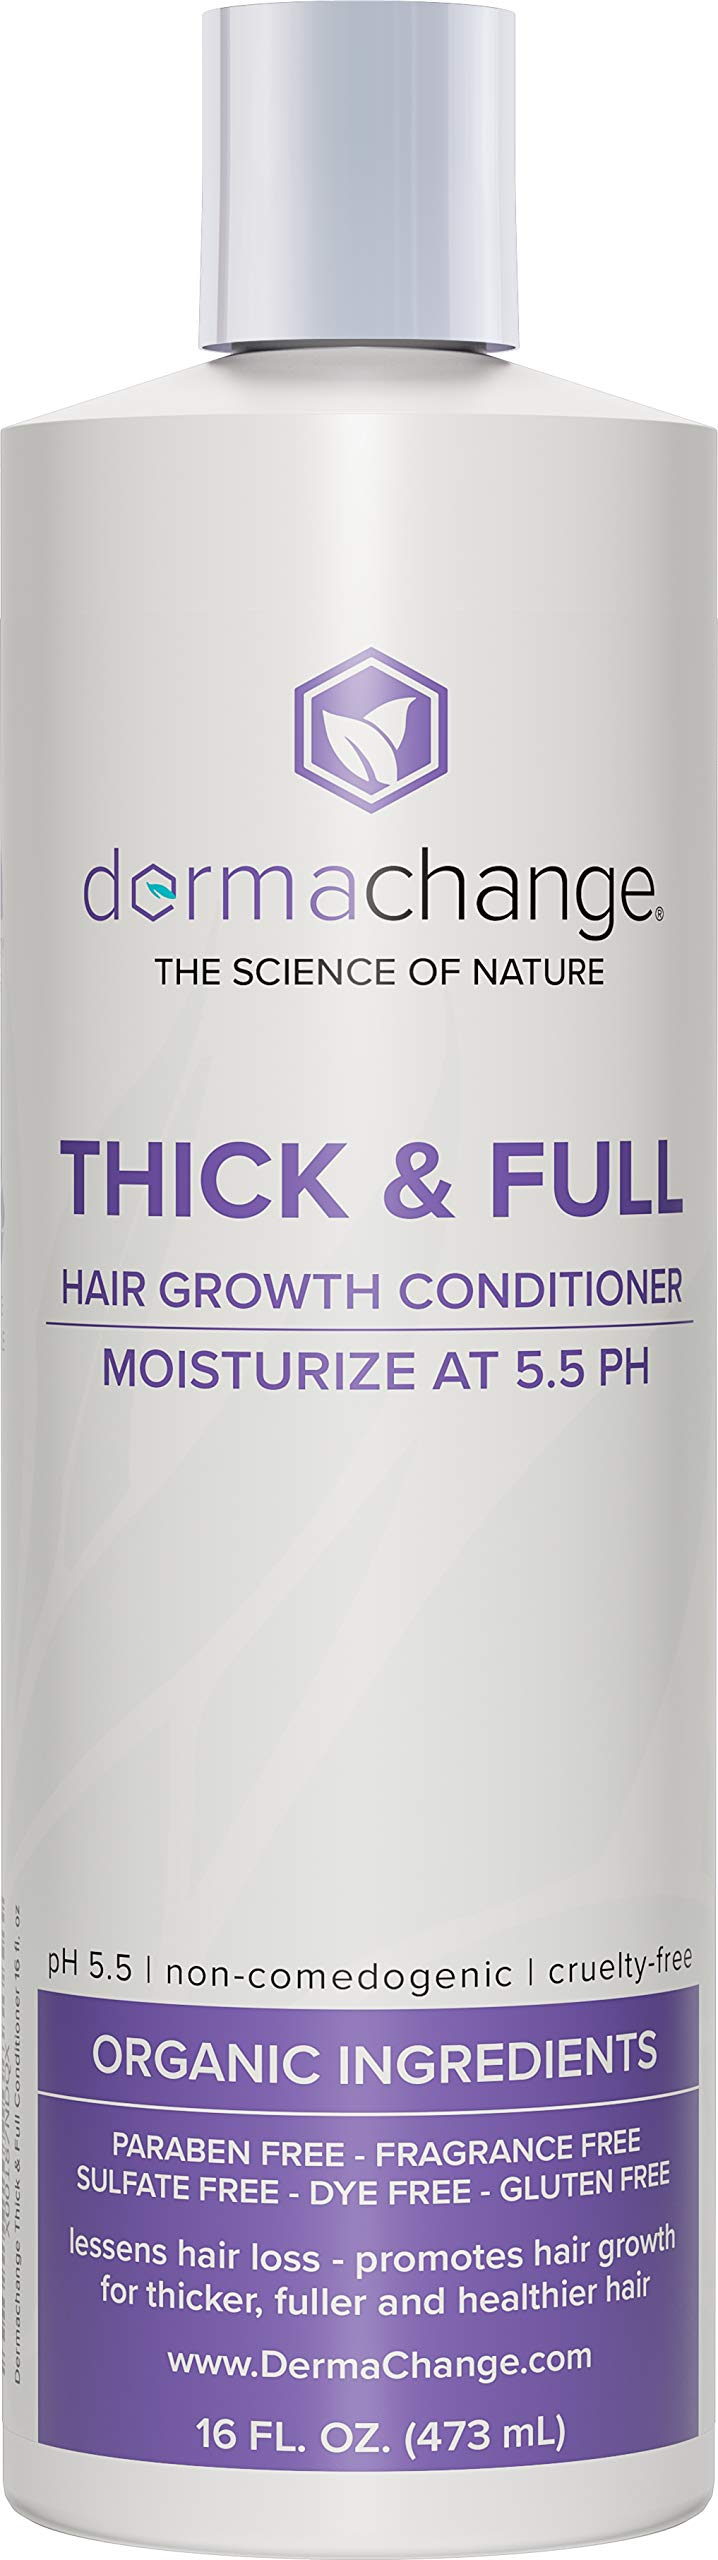 Hair Growth Organic Conditioner - Grow Hair Fast - Sulfate Free - Best Hair Products With Vitamins - Prevent Hair Loss - Helps Dermatitis - For Women and Men - Made in USA, 16 fl.oz.(473ml) by DermaChange (Image #1)